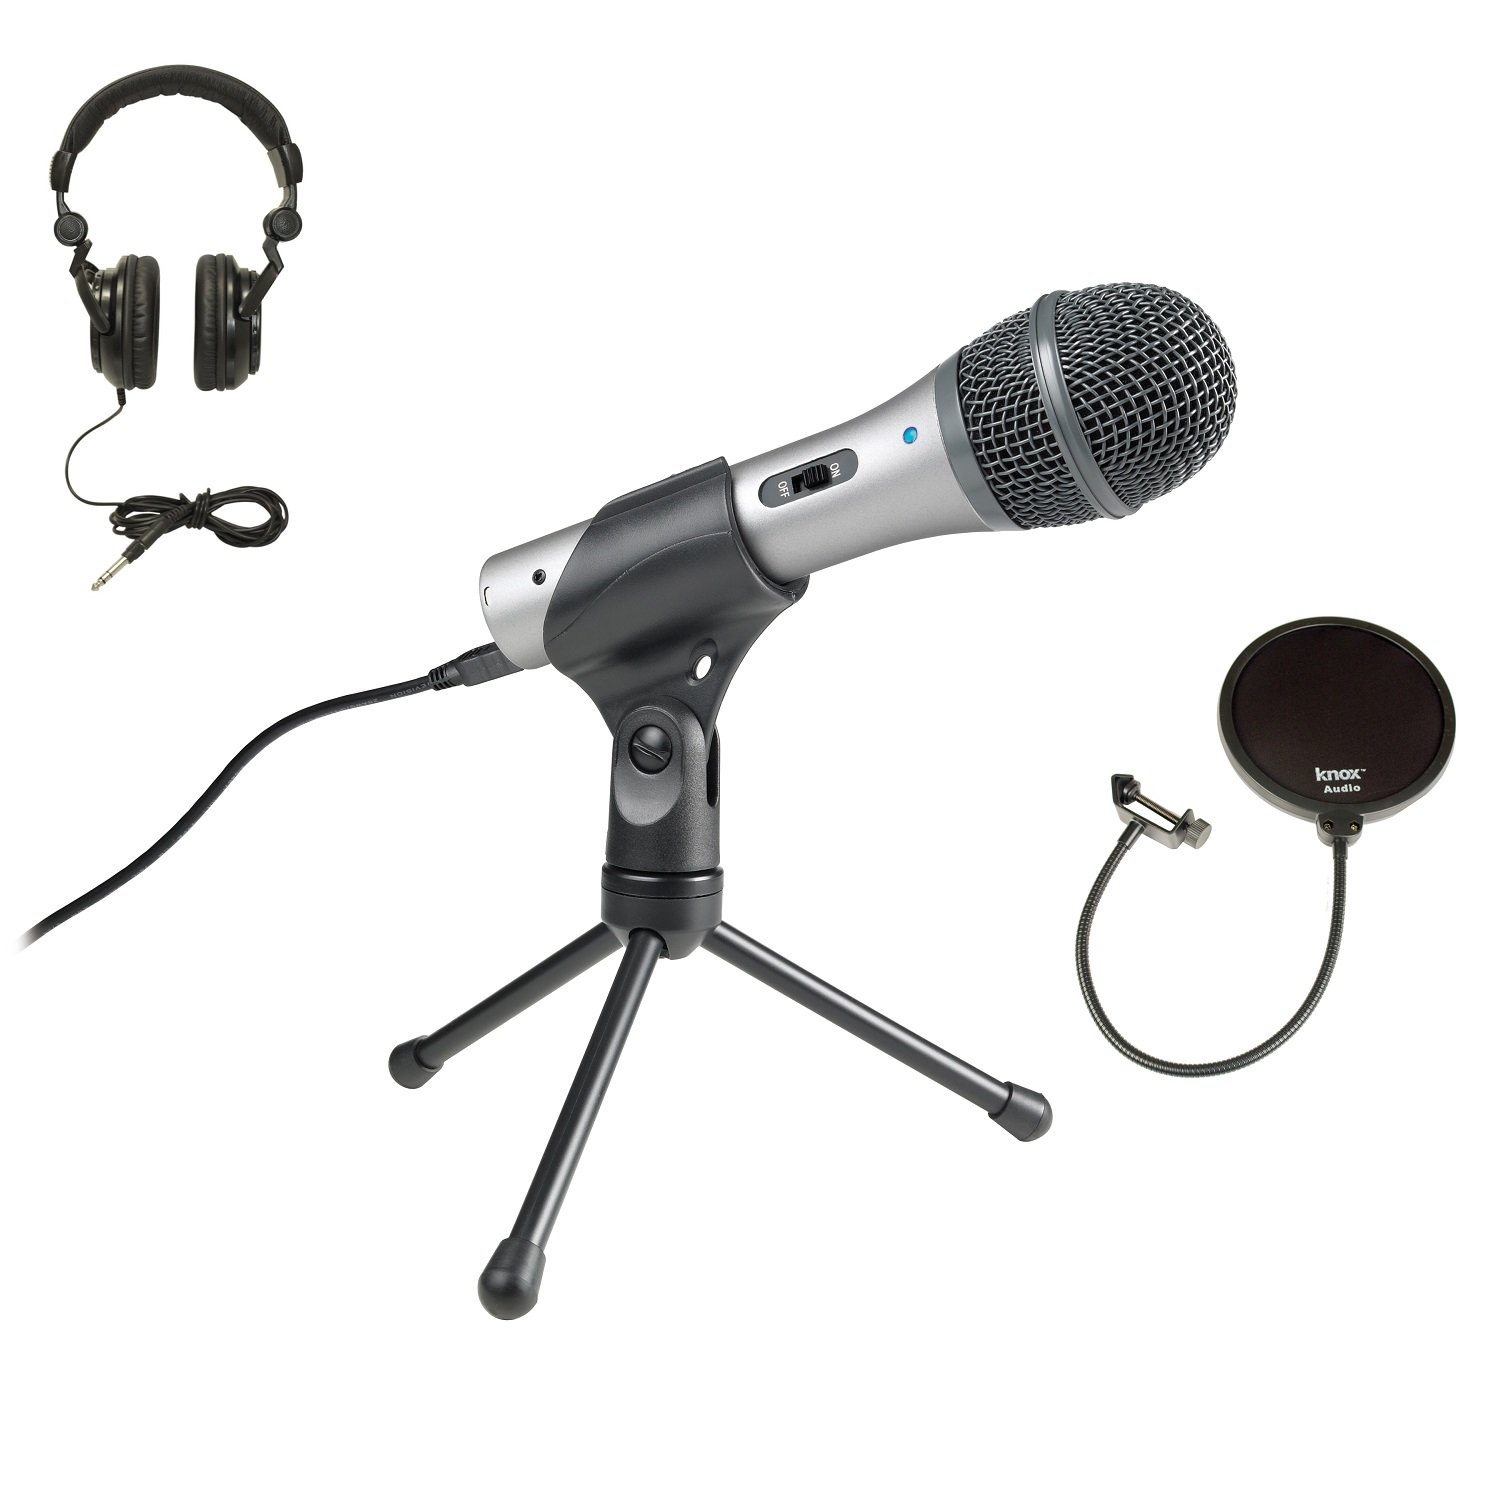 Audio Technica ATR2100-USB USB/XLR Microphone with Knox Pop Filter and Headphones